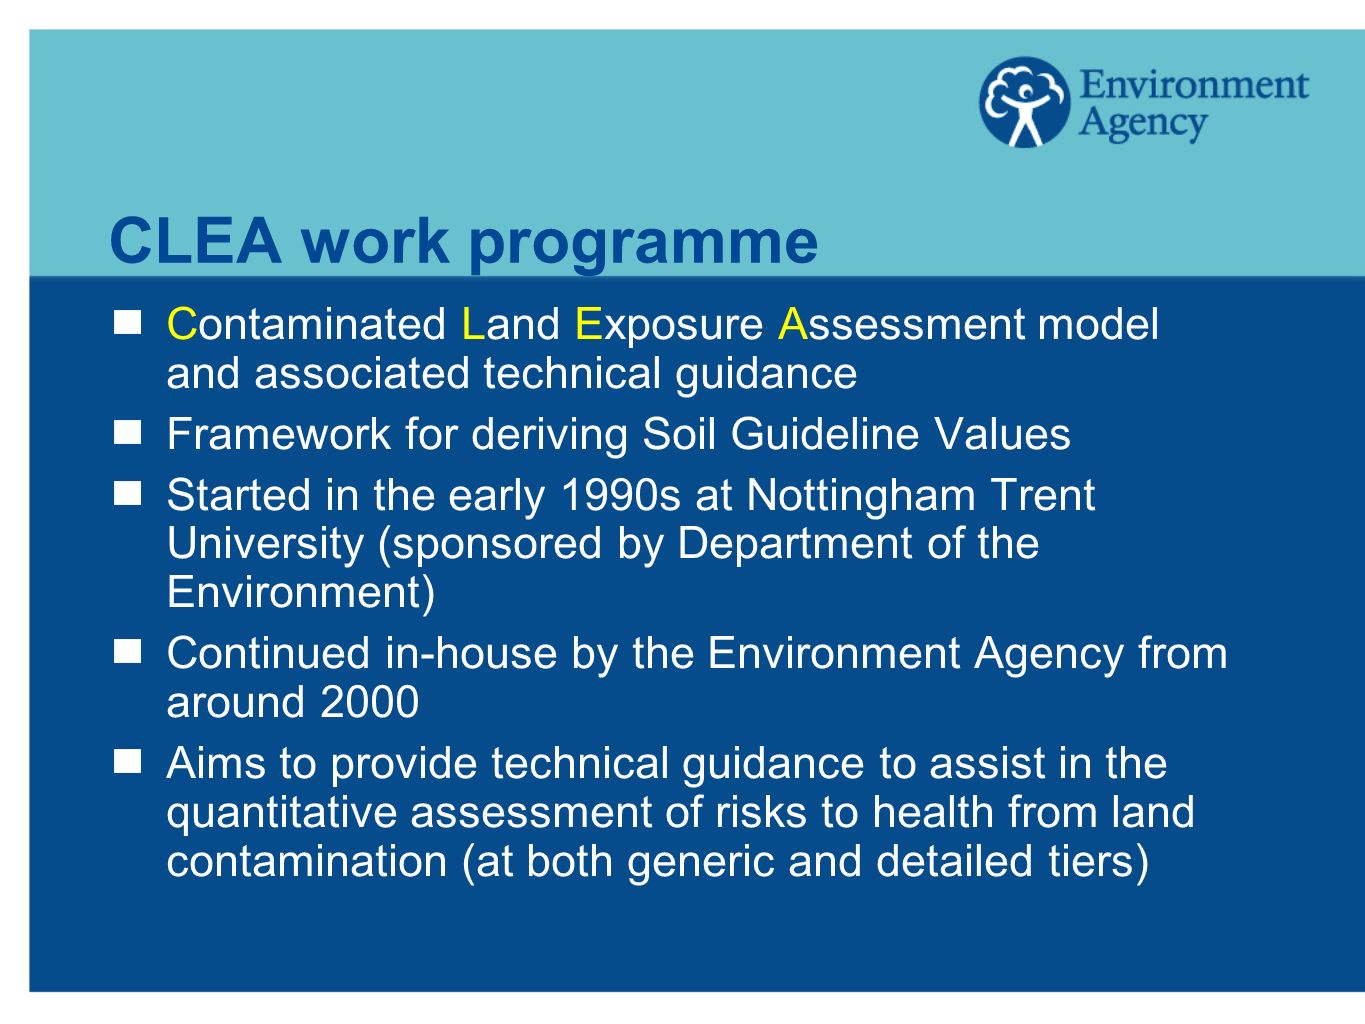 CLEA work programme Contaminated Land Exposure Assessment model and associated technical guidance Framework for deriving Soil Guideline Values Started in the early 1990s at Nottingham Trent University (sponsored by Department of the Environment) Continued in-house by the Environment Agency from around 2000 Aims to provide technical guidance to assist in the quantitative assessment of risks to health from land contamination (at both generic and detailed tiers)